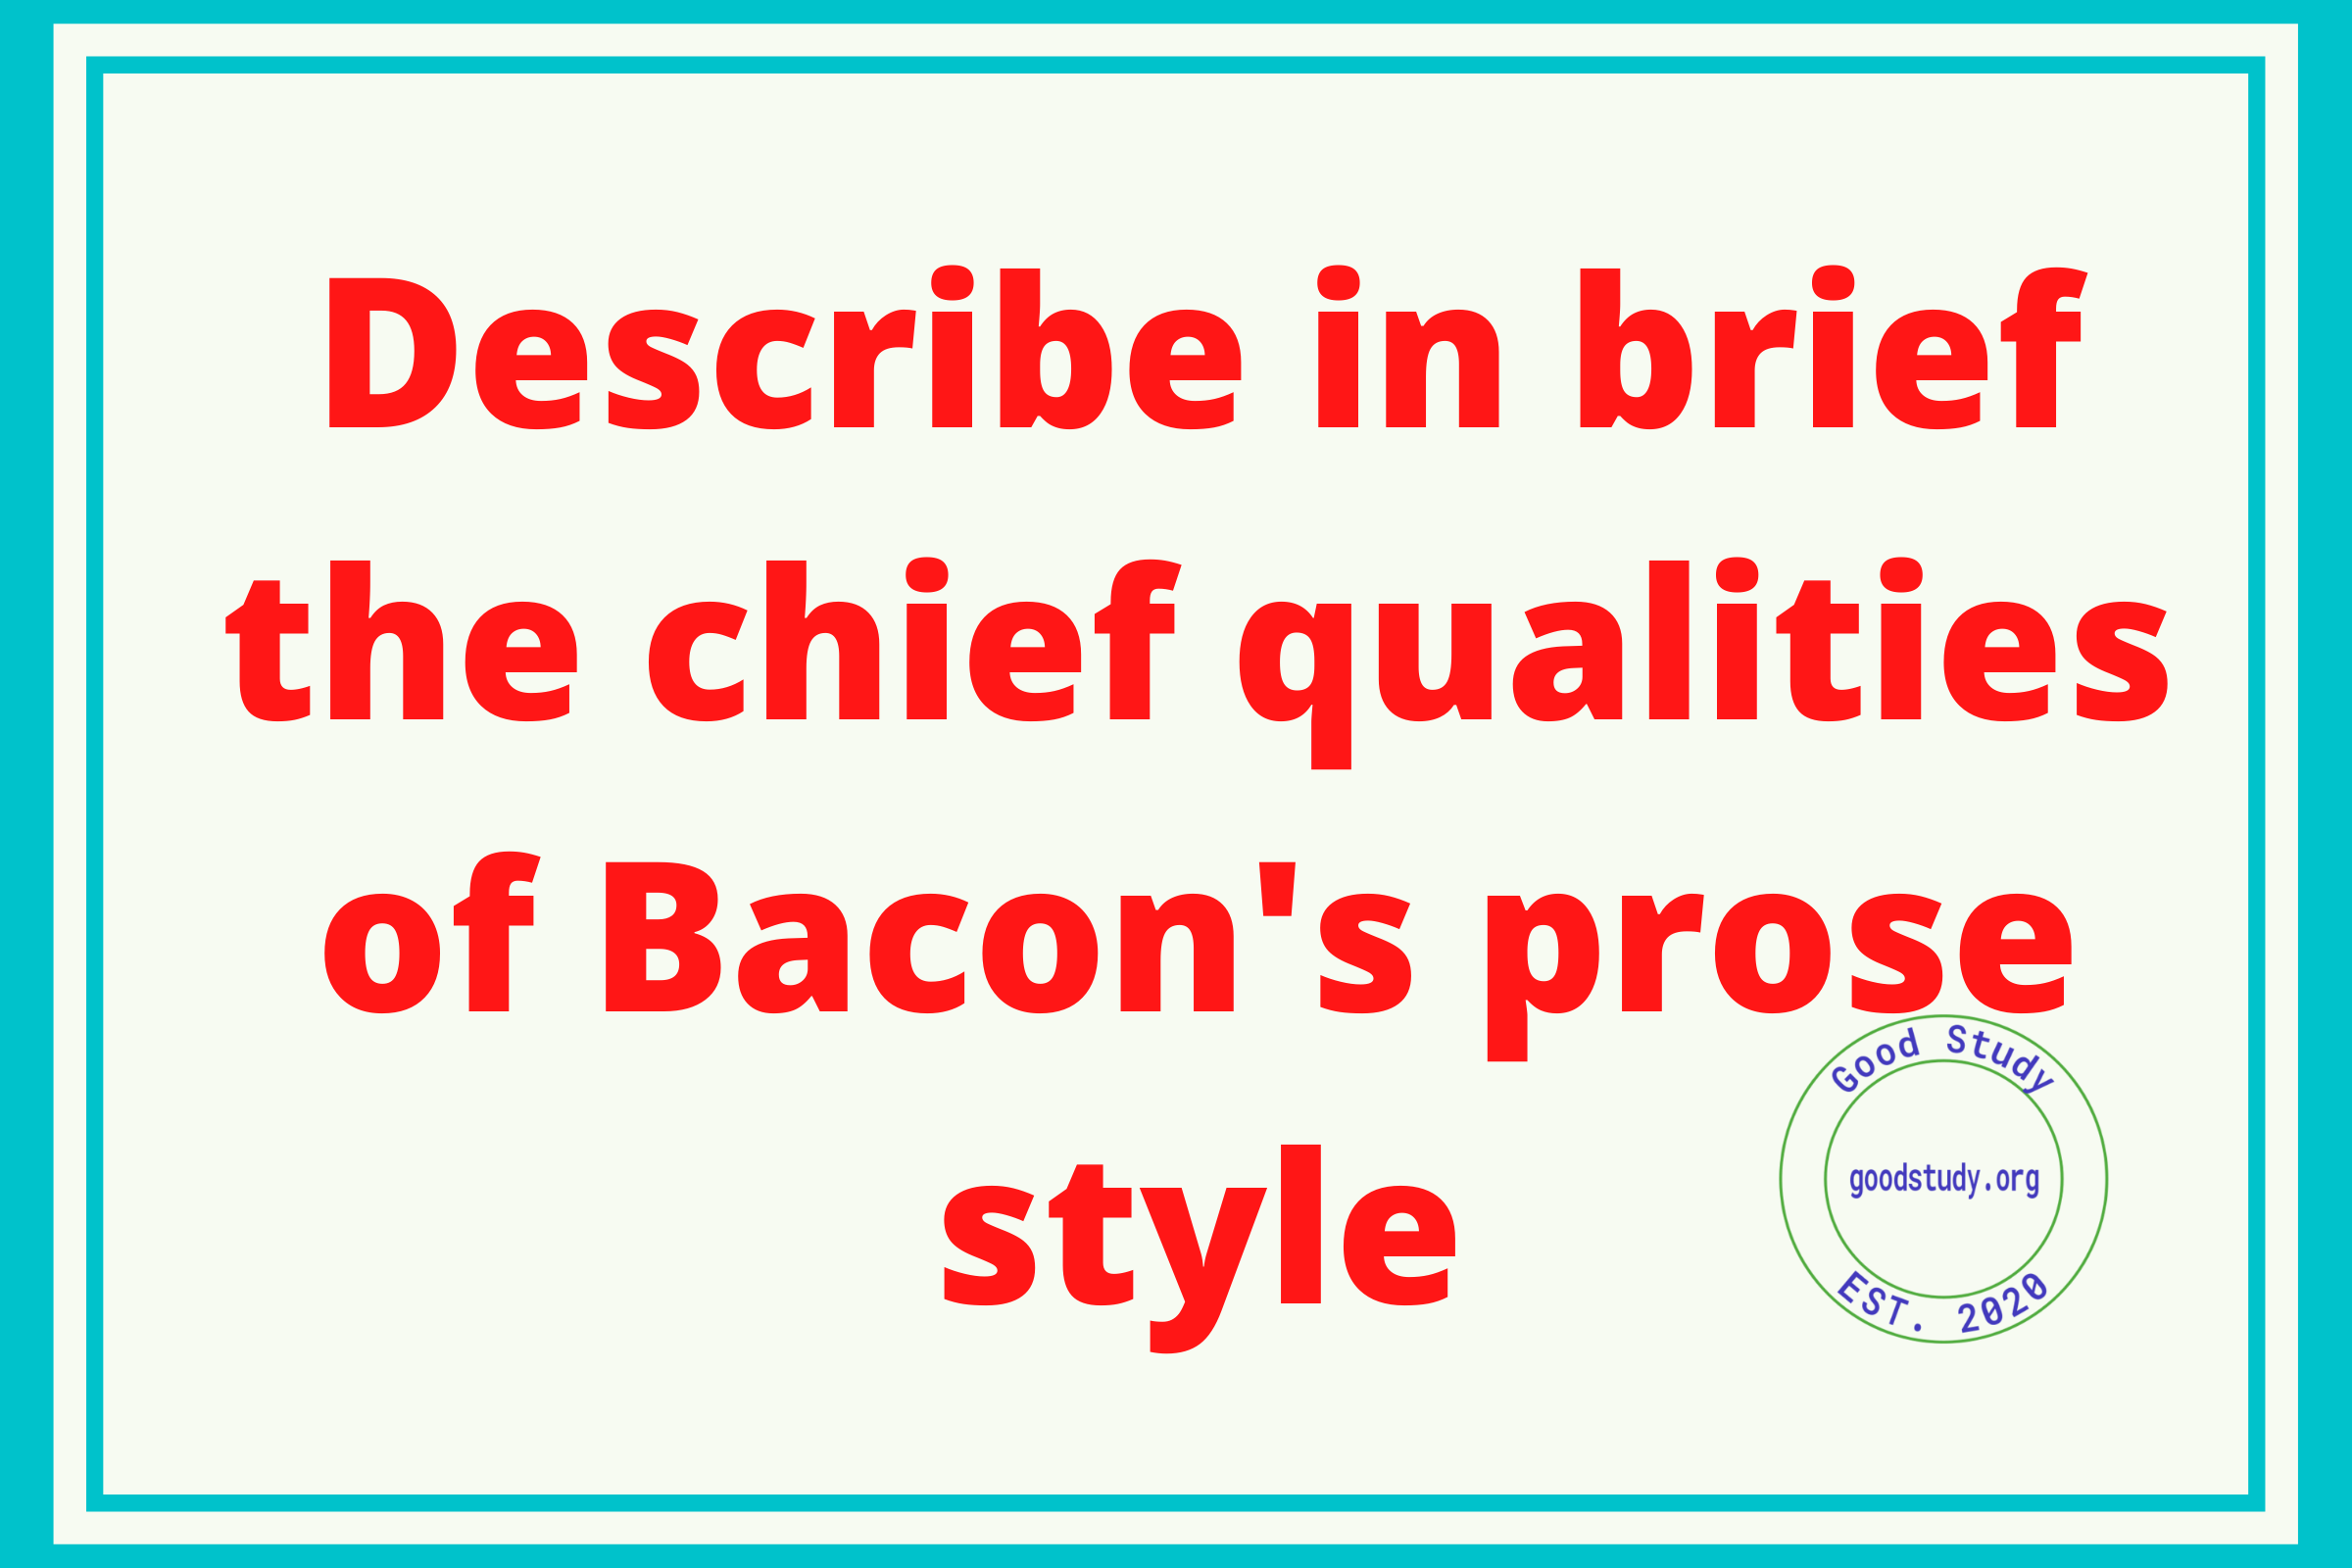 Describe in brief the chief qualities of Bacon's prose style